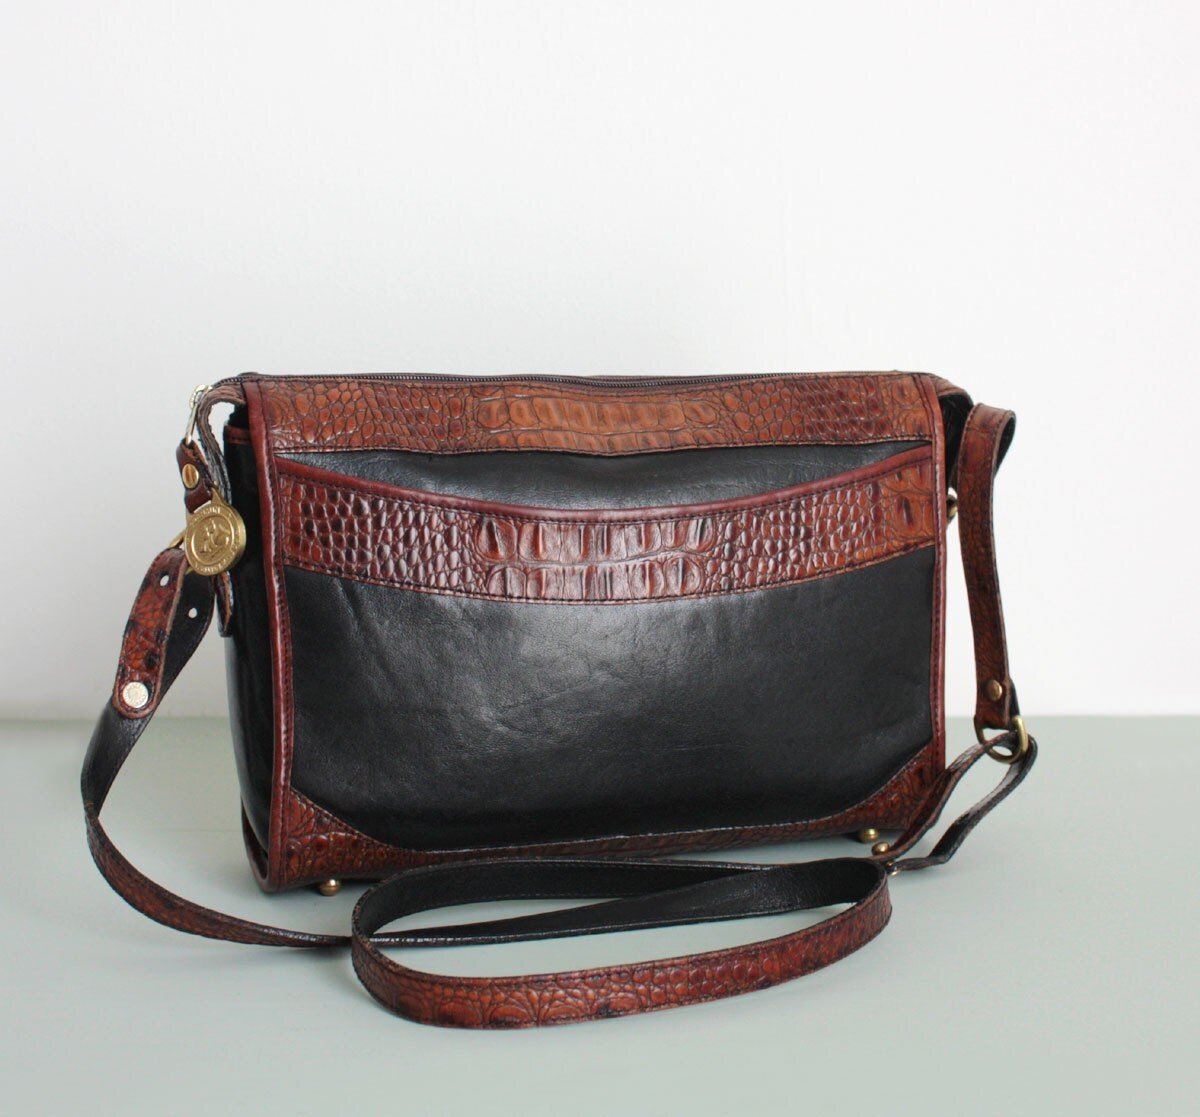 Brahmin Handbags. Ebay Results For Brahmin BRAHMIN HANDBAG ASHER LEATHER TOTE COCOA MELBOURNE PURSE. $ (0 Bids) End Date: Sunday Dec PST Do not go overboard or you can make the whole look seem cheap. If you have a limited budget for clothes, avoid buying clothes that are trendy that will only last you for a season.